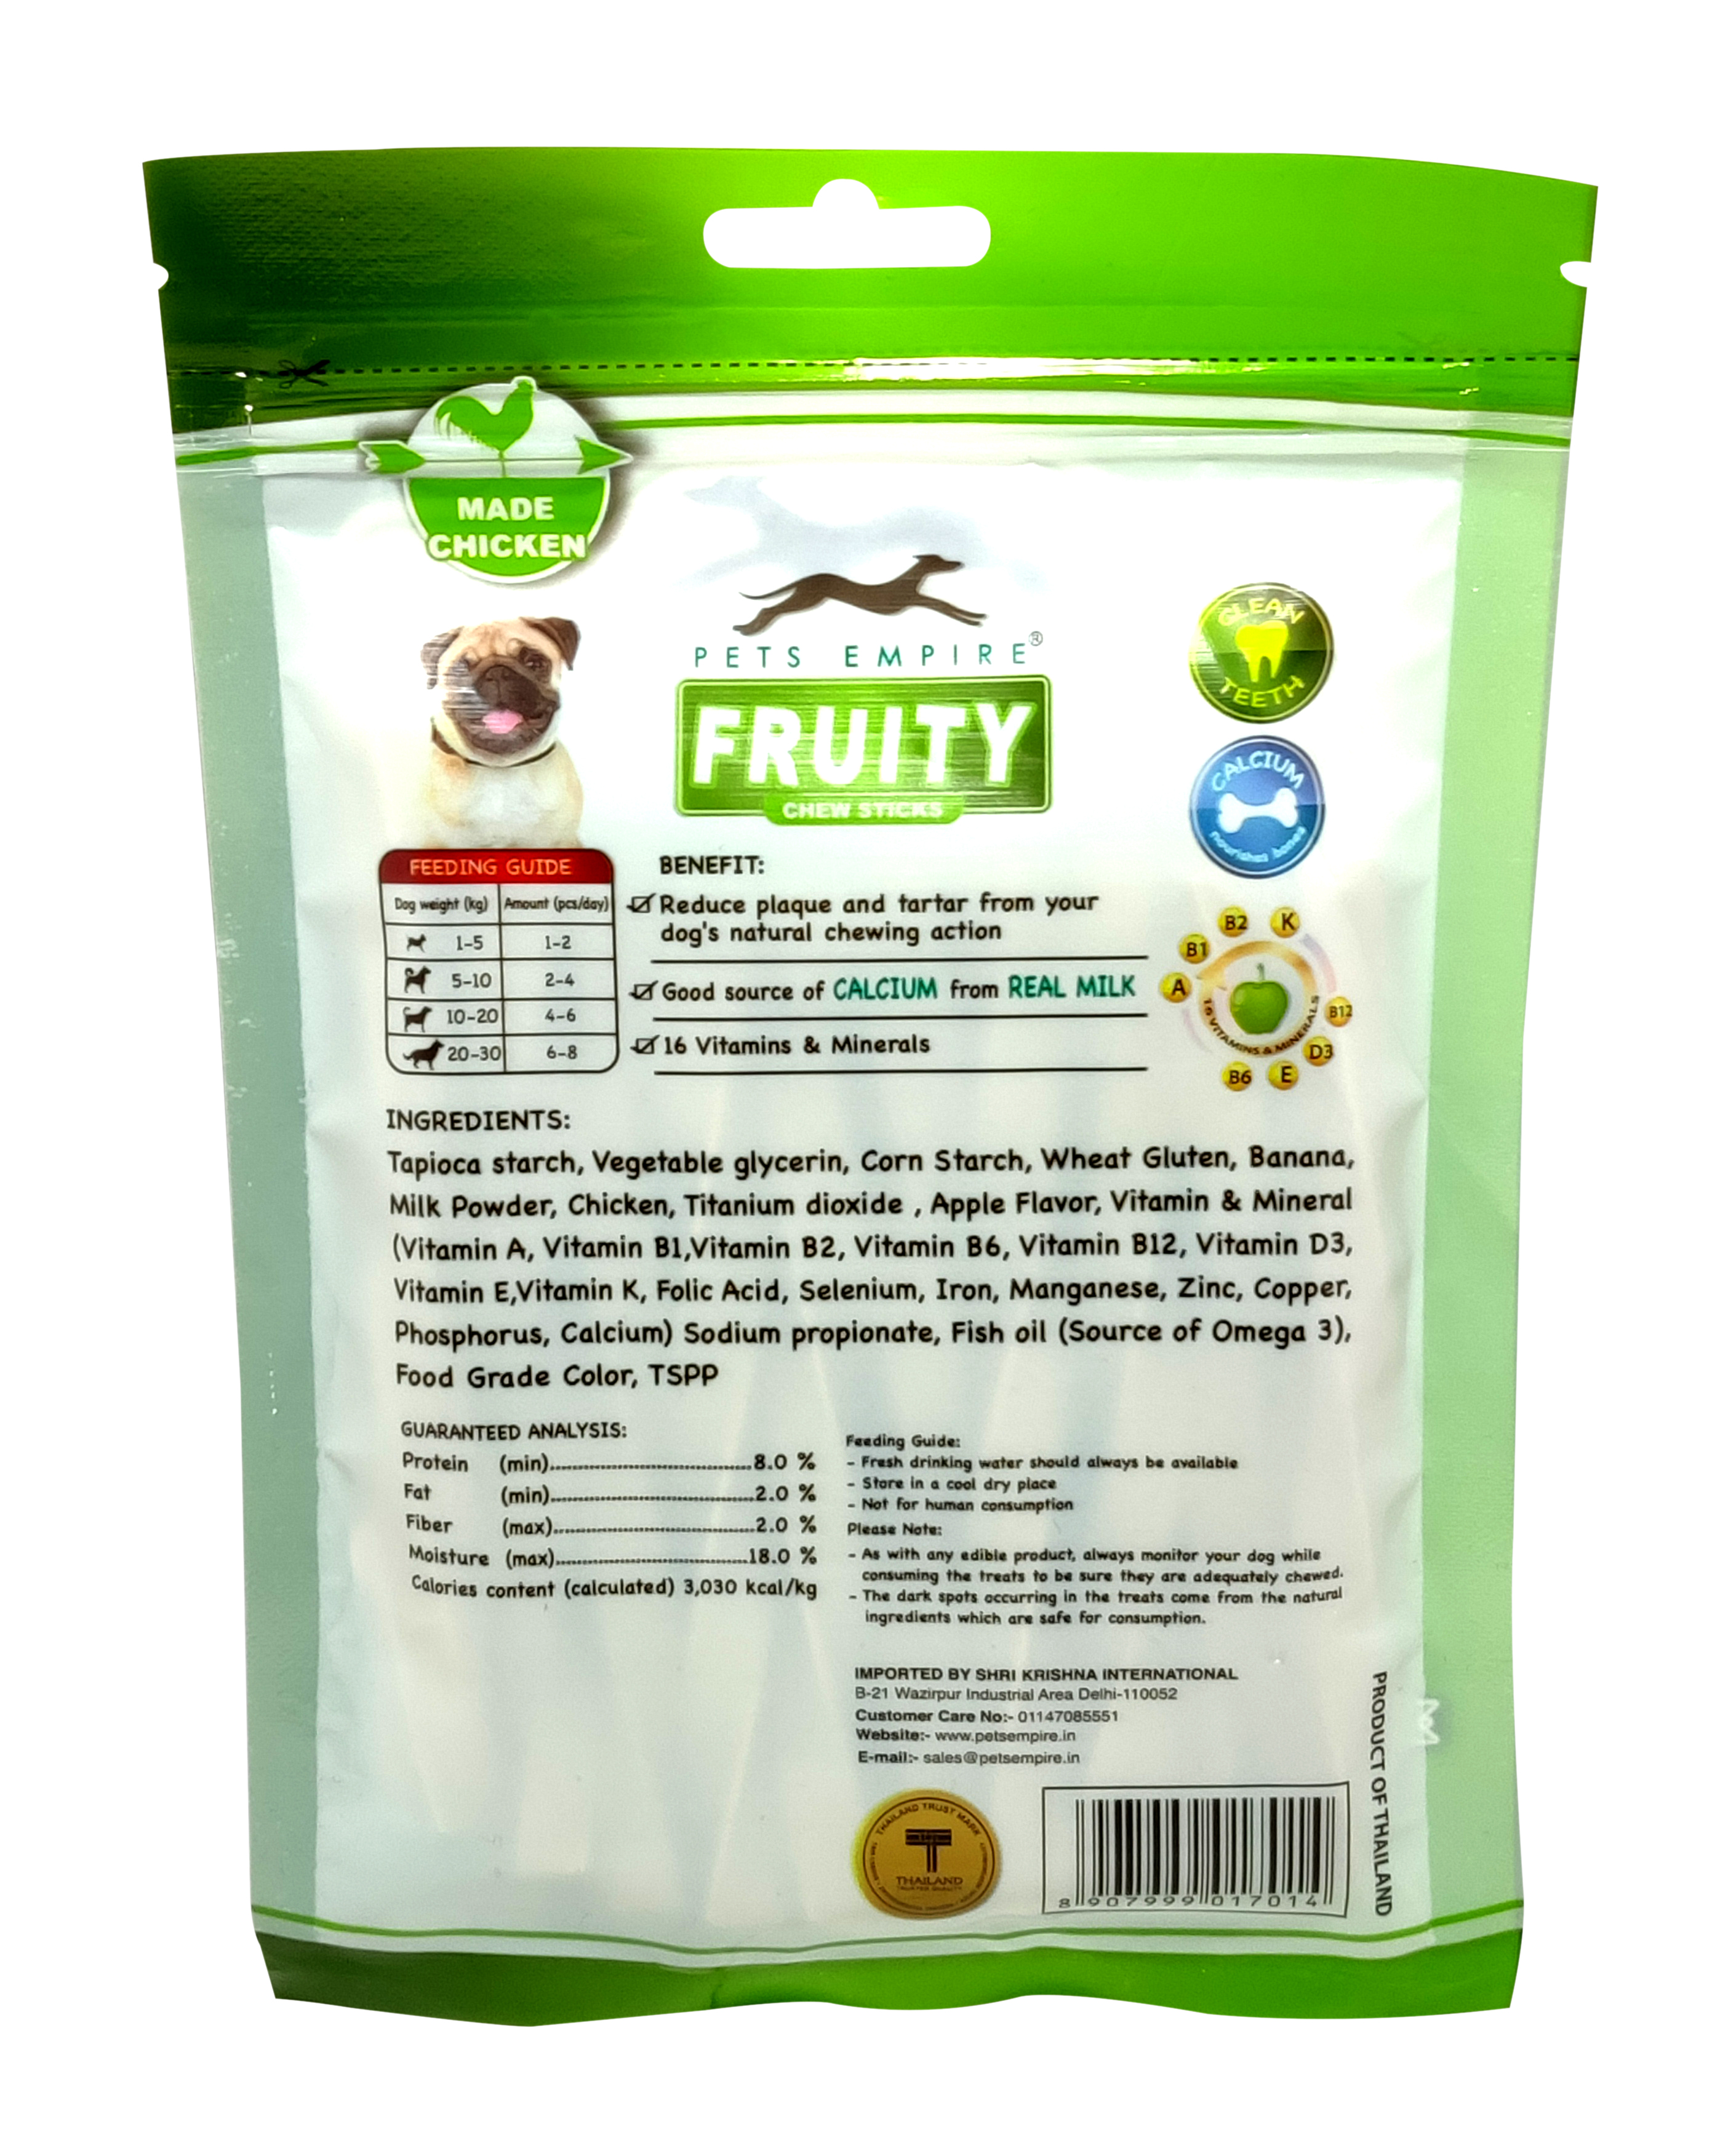 Pets Empire Fruity Chewy Sticks Pest Dental Stick Dog Treats Provides Health Benefits Apple Flavor Weight 120 GMS